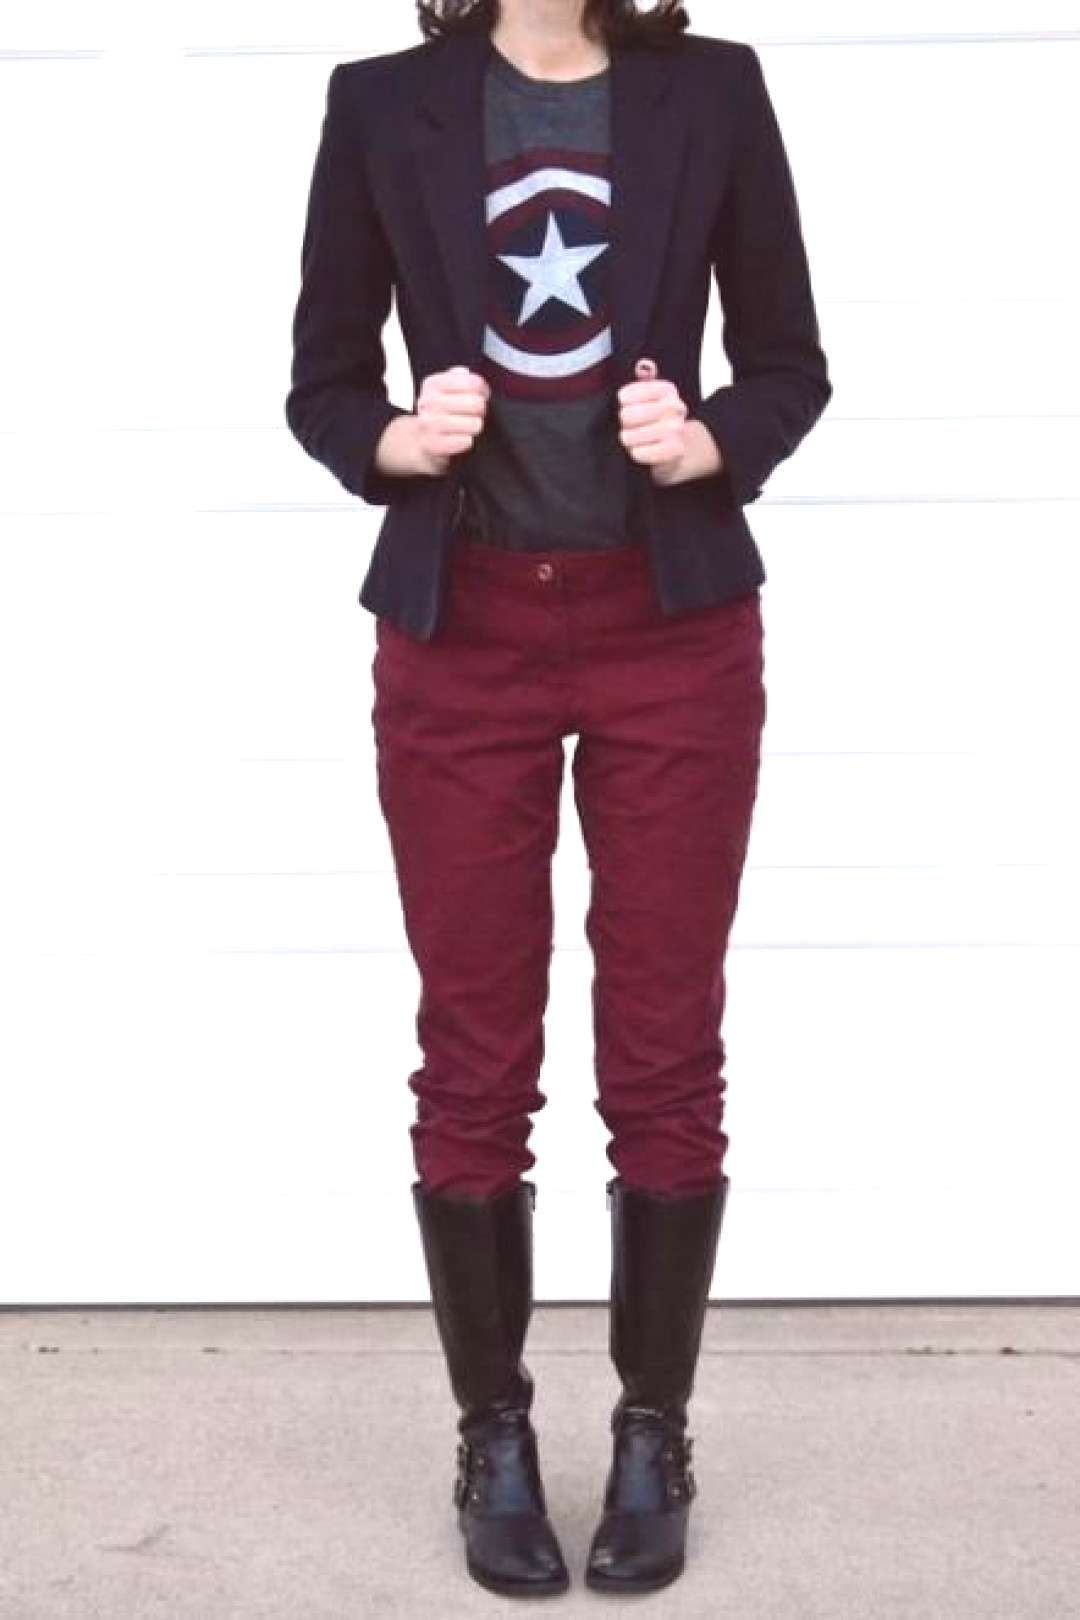 62+ Ideas Burgundy Rain Boats Outfit Skinny Jeans 62+ Ideas Burgundy Rain Boats Outfit Skinny Jeans